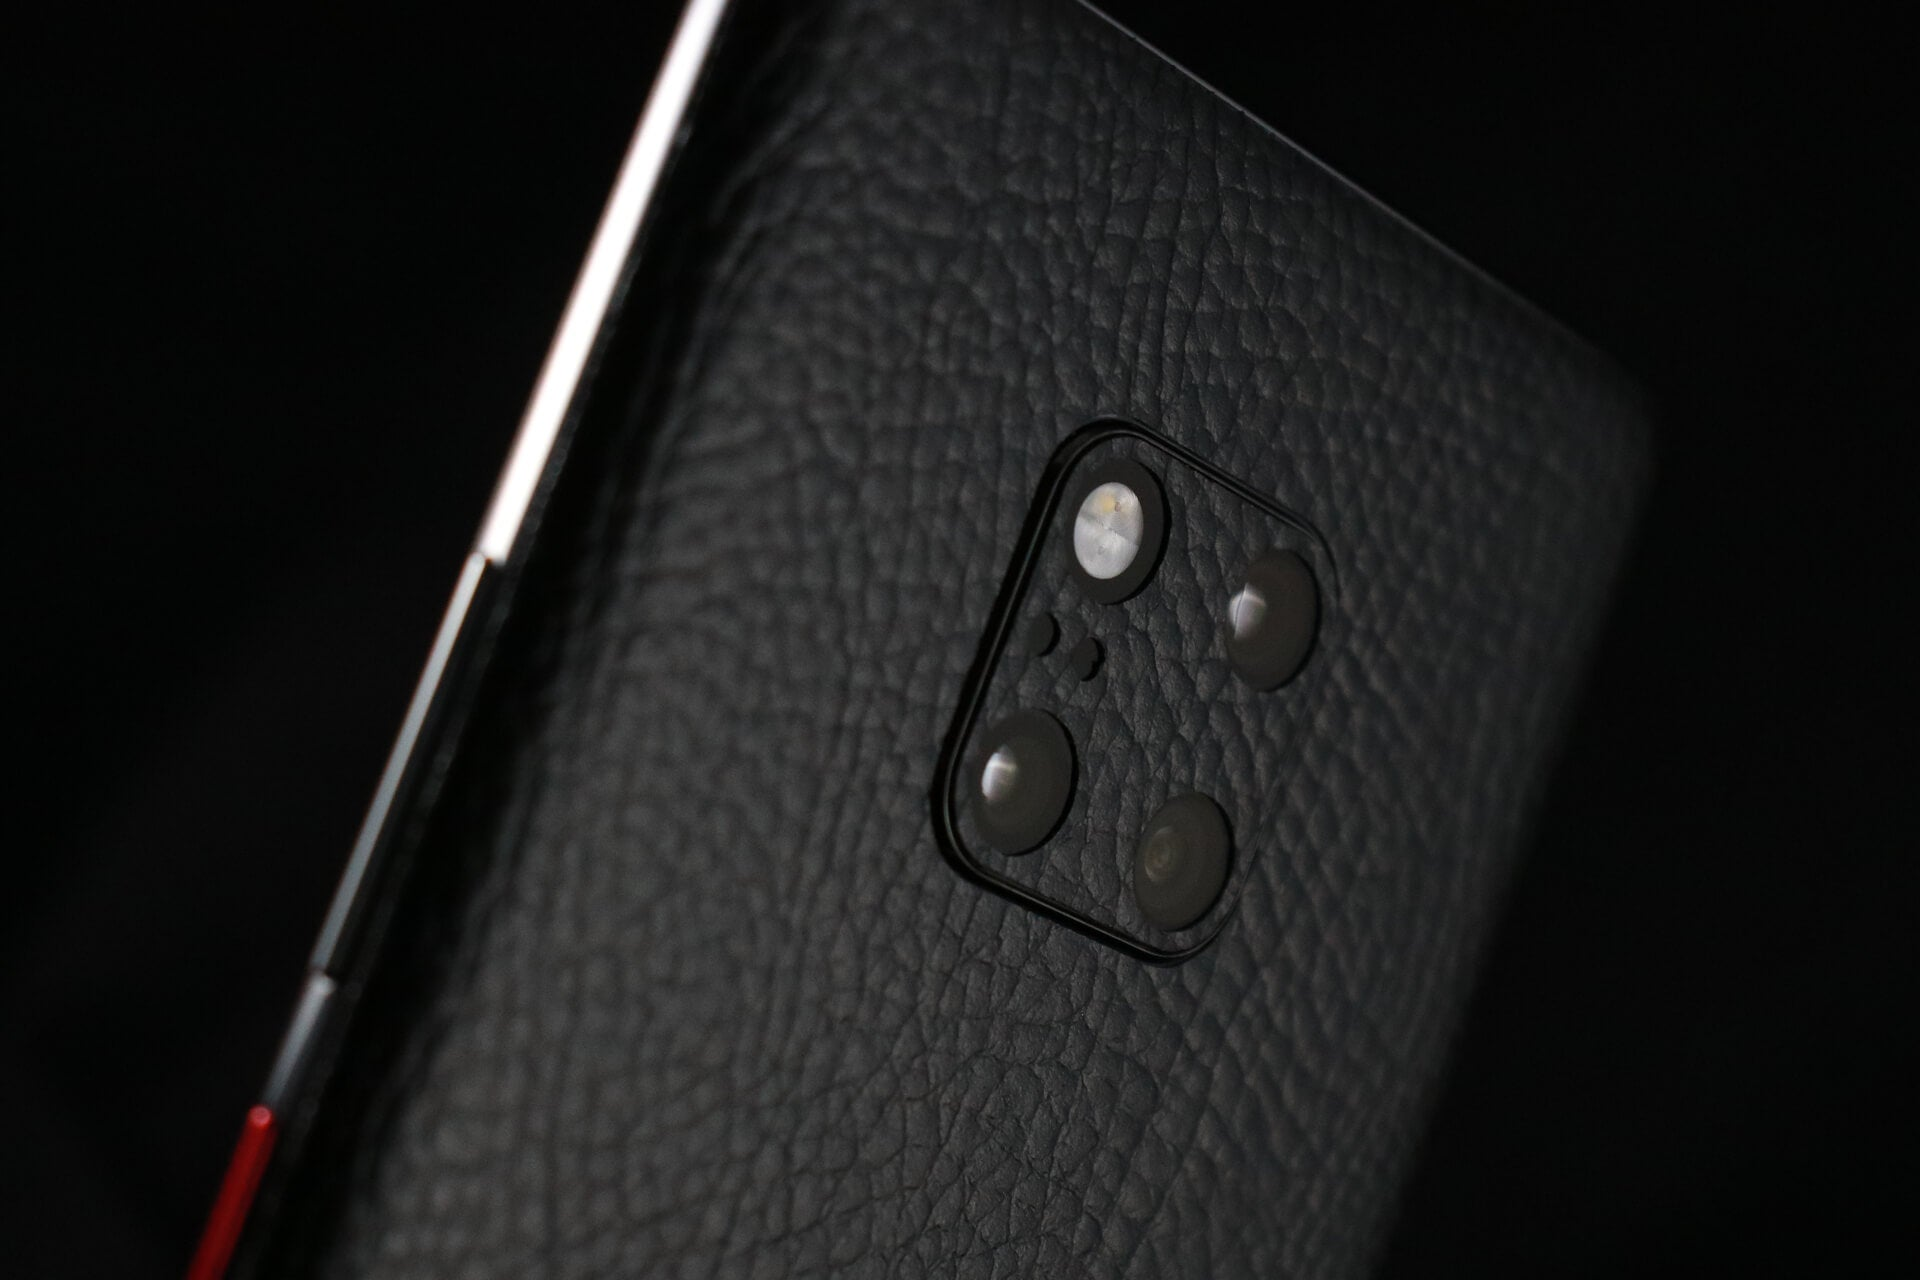 Huawei Mate 20 Pro Black Leather Skins